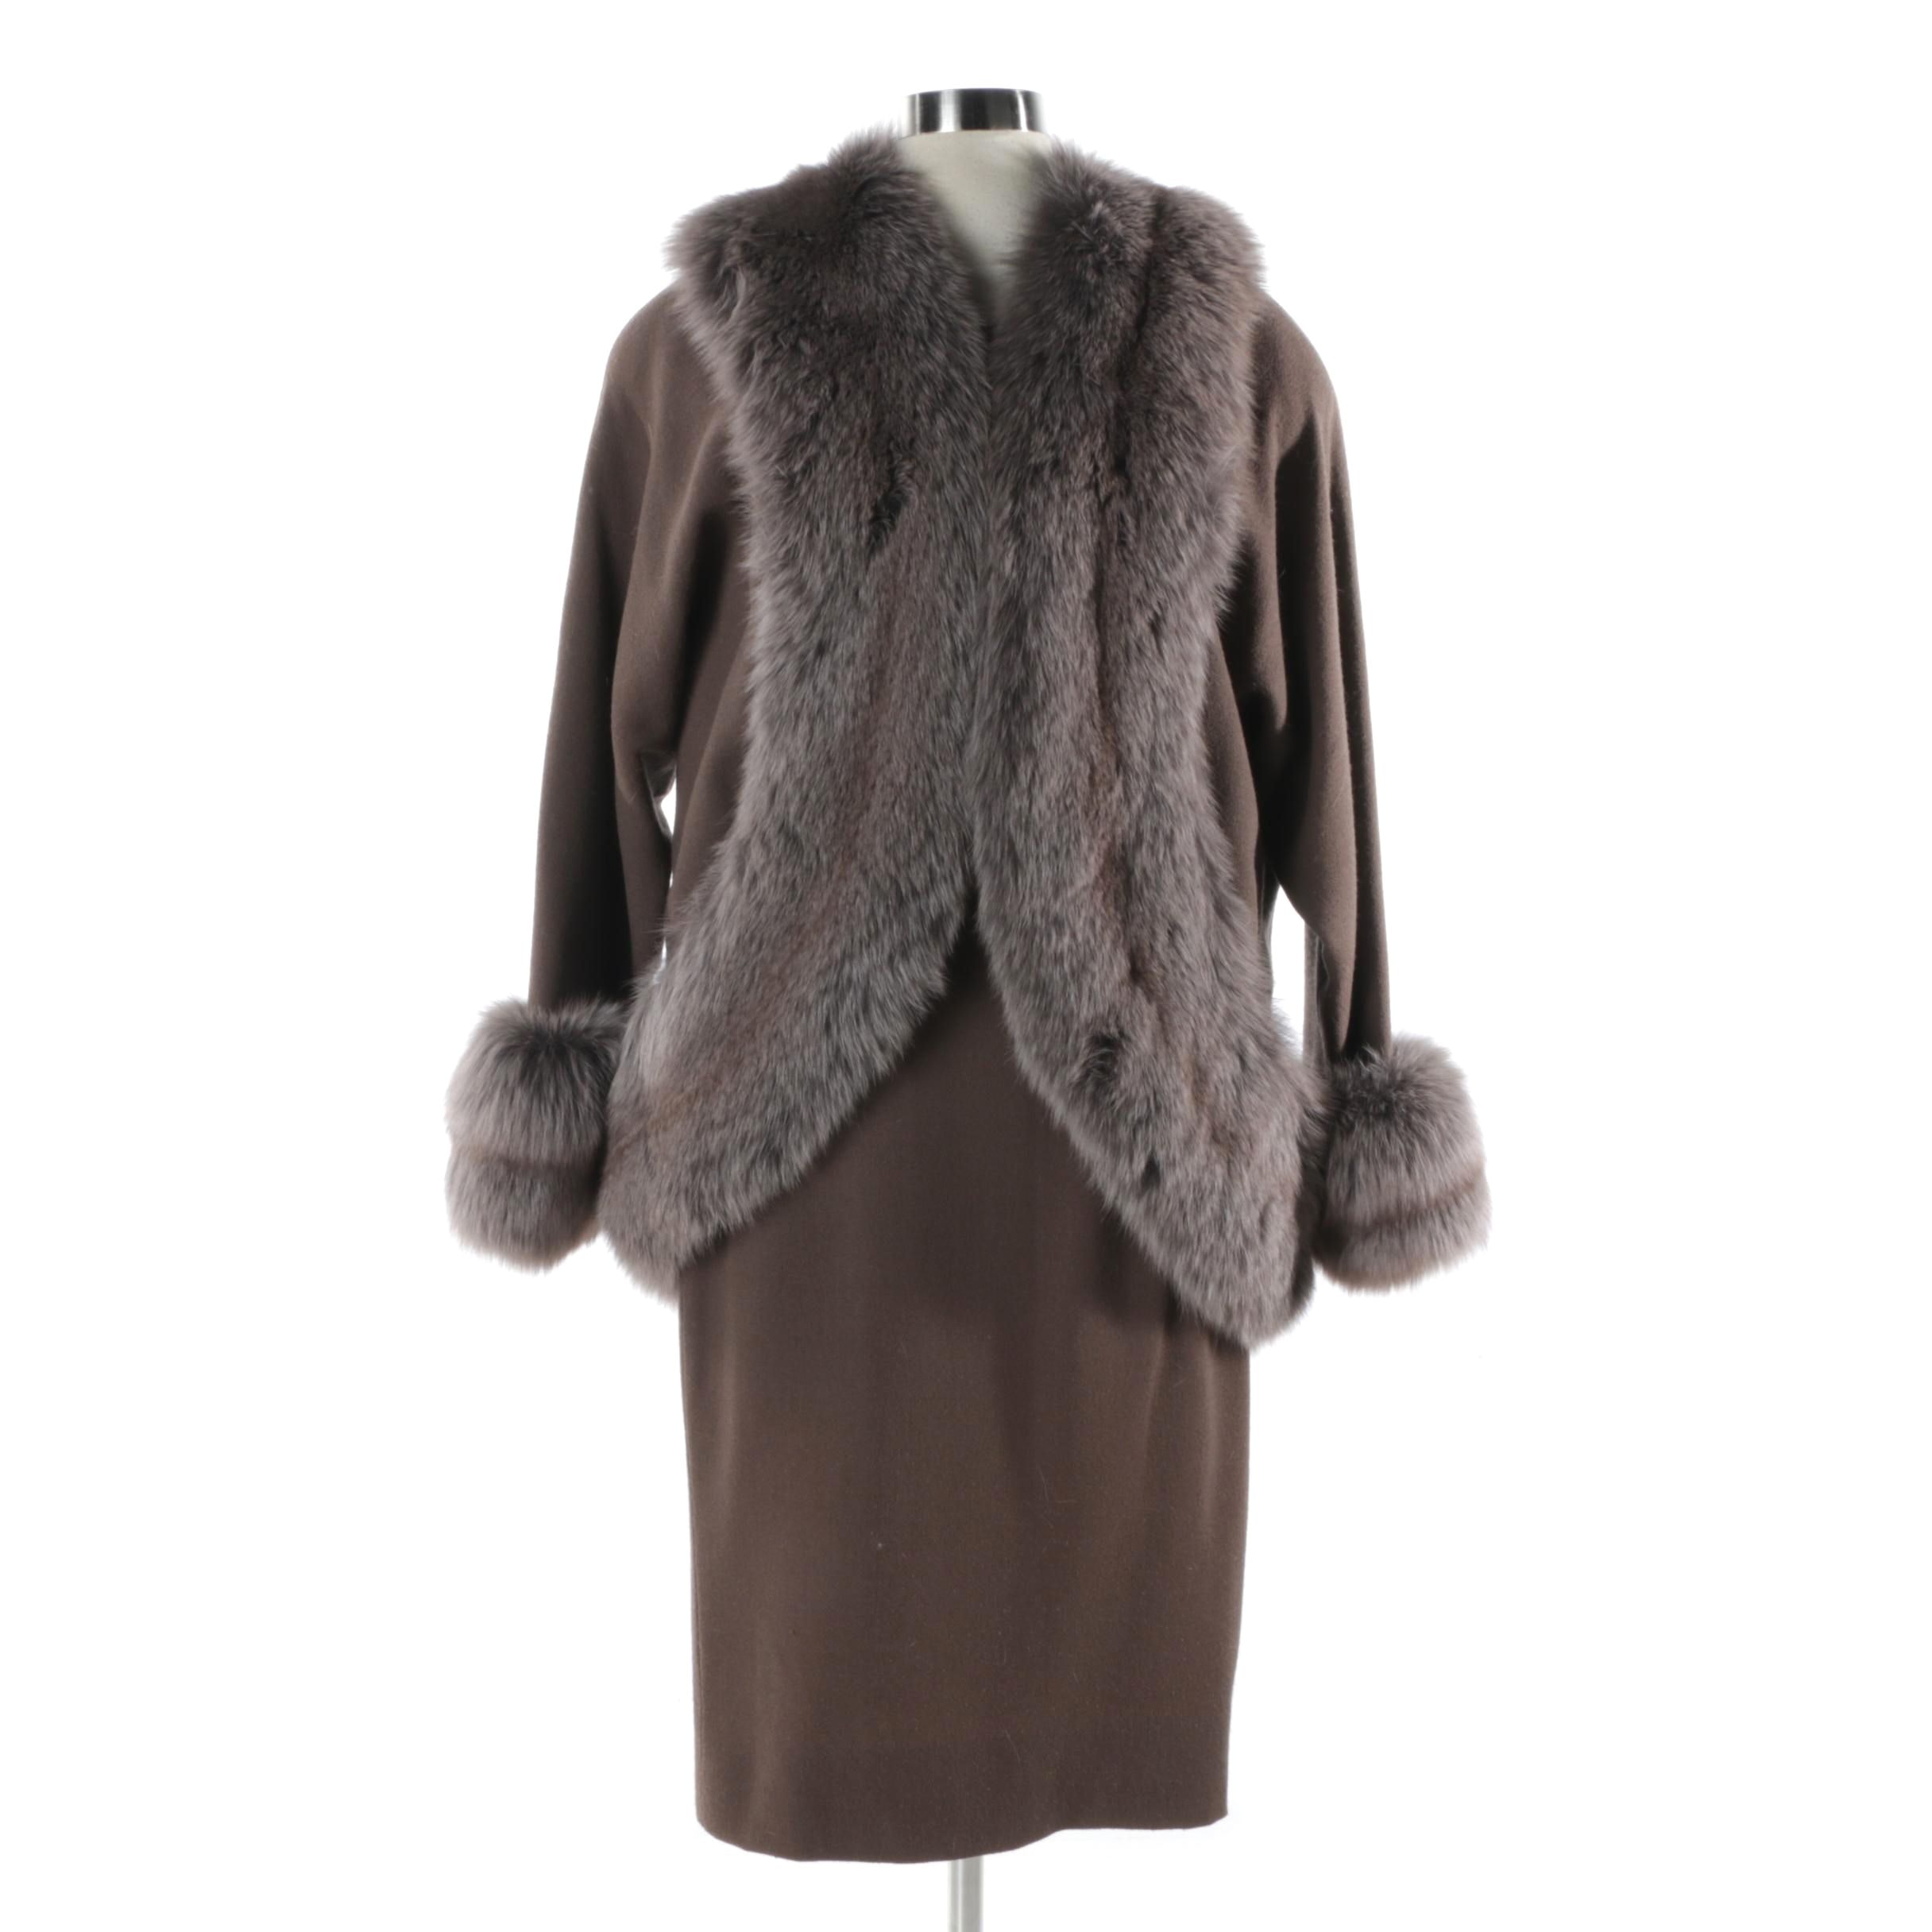 Circa 1960s Vintage Travilla Dress and Jacket with Fox Fur Trim